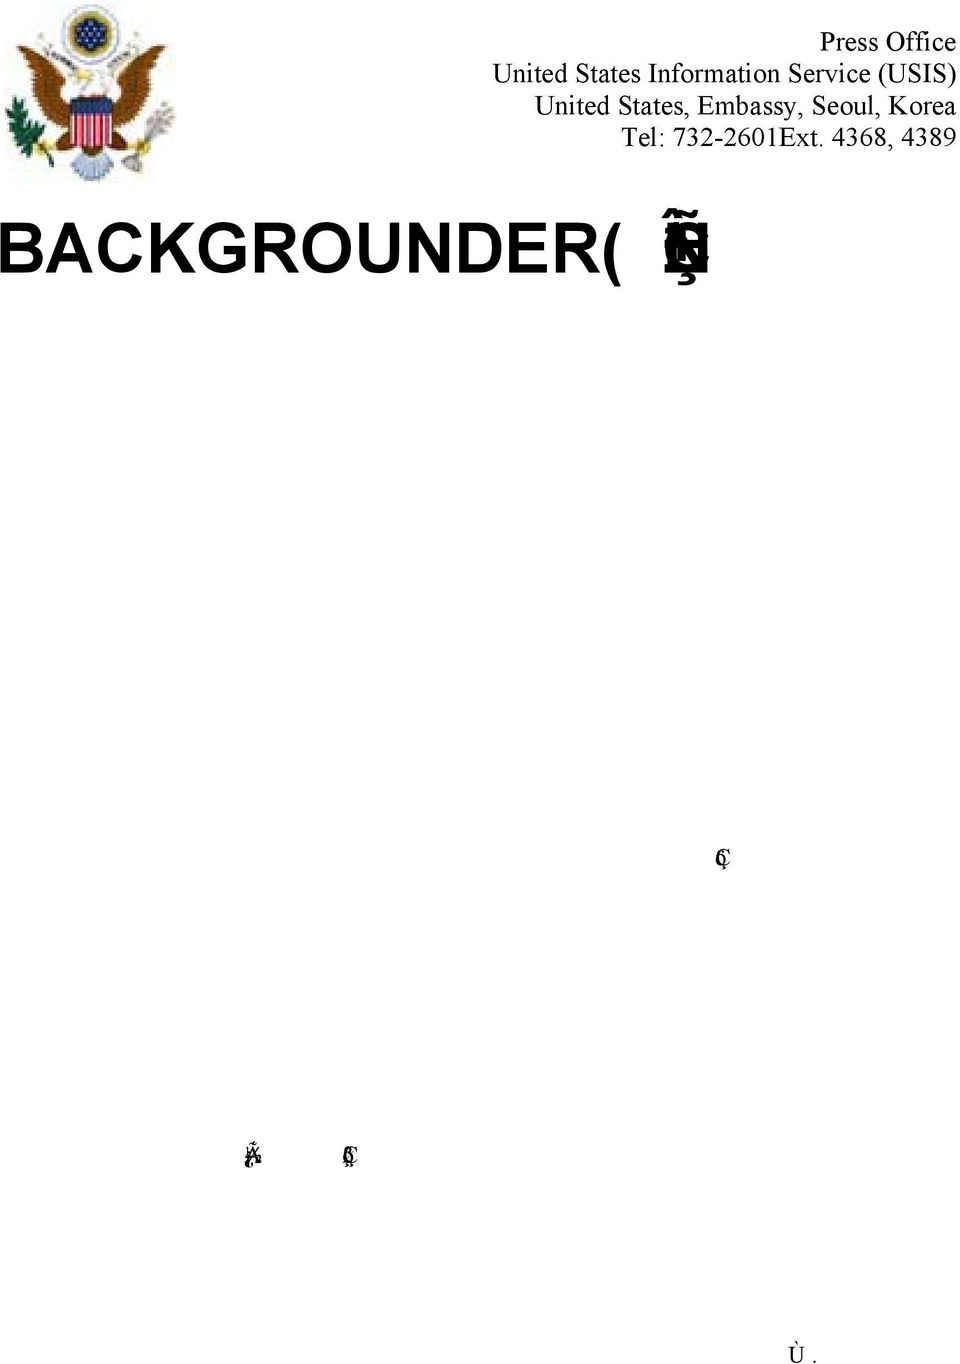 BACKGROUNDER( ) June 19, 1989 1980 5 1980 5 1979 10 26 1980 5 1988